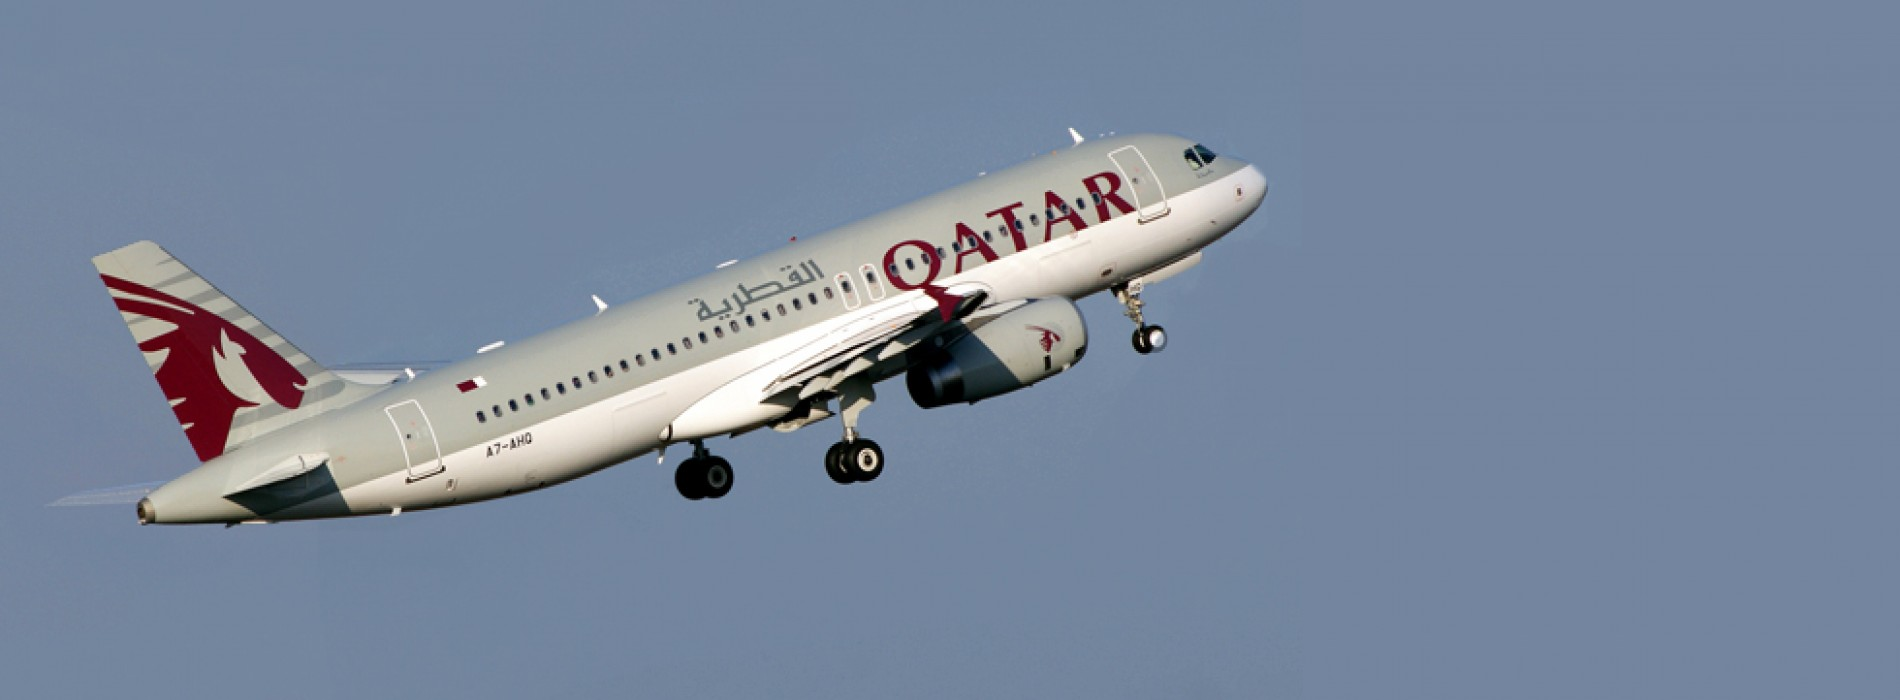 Qatar Airways may invest in Indian aviation sector